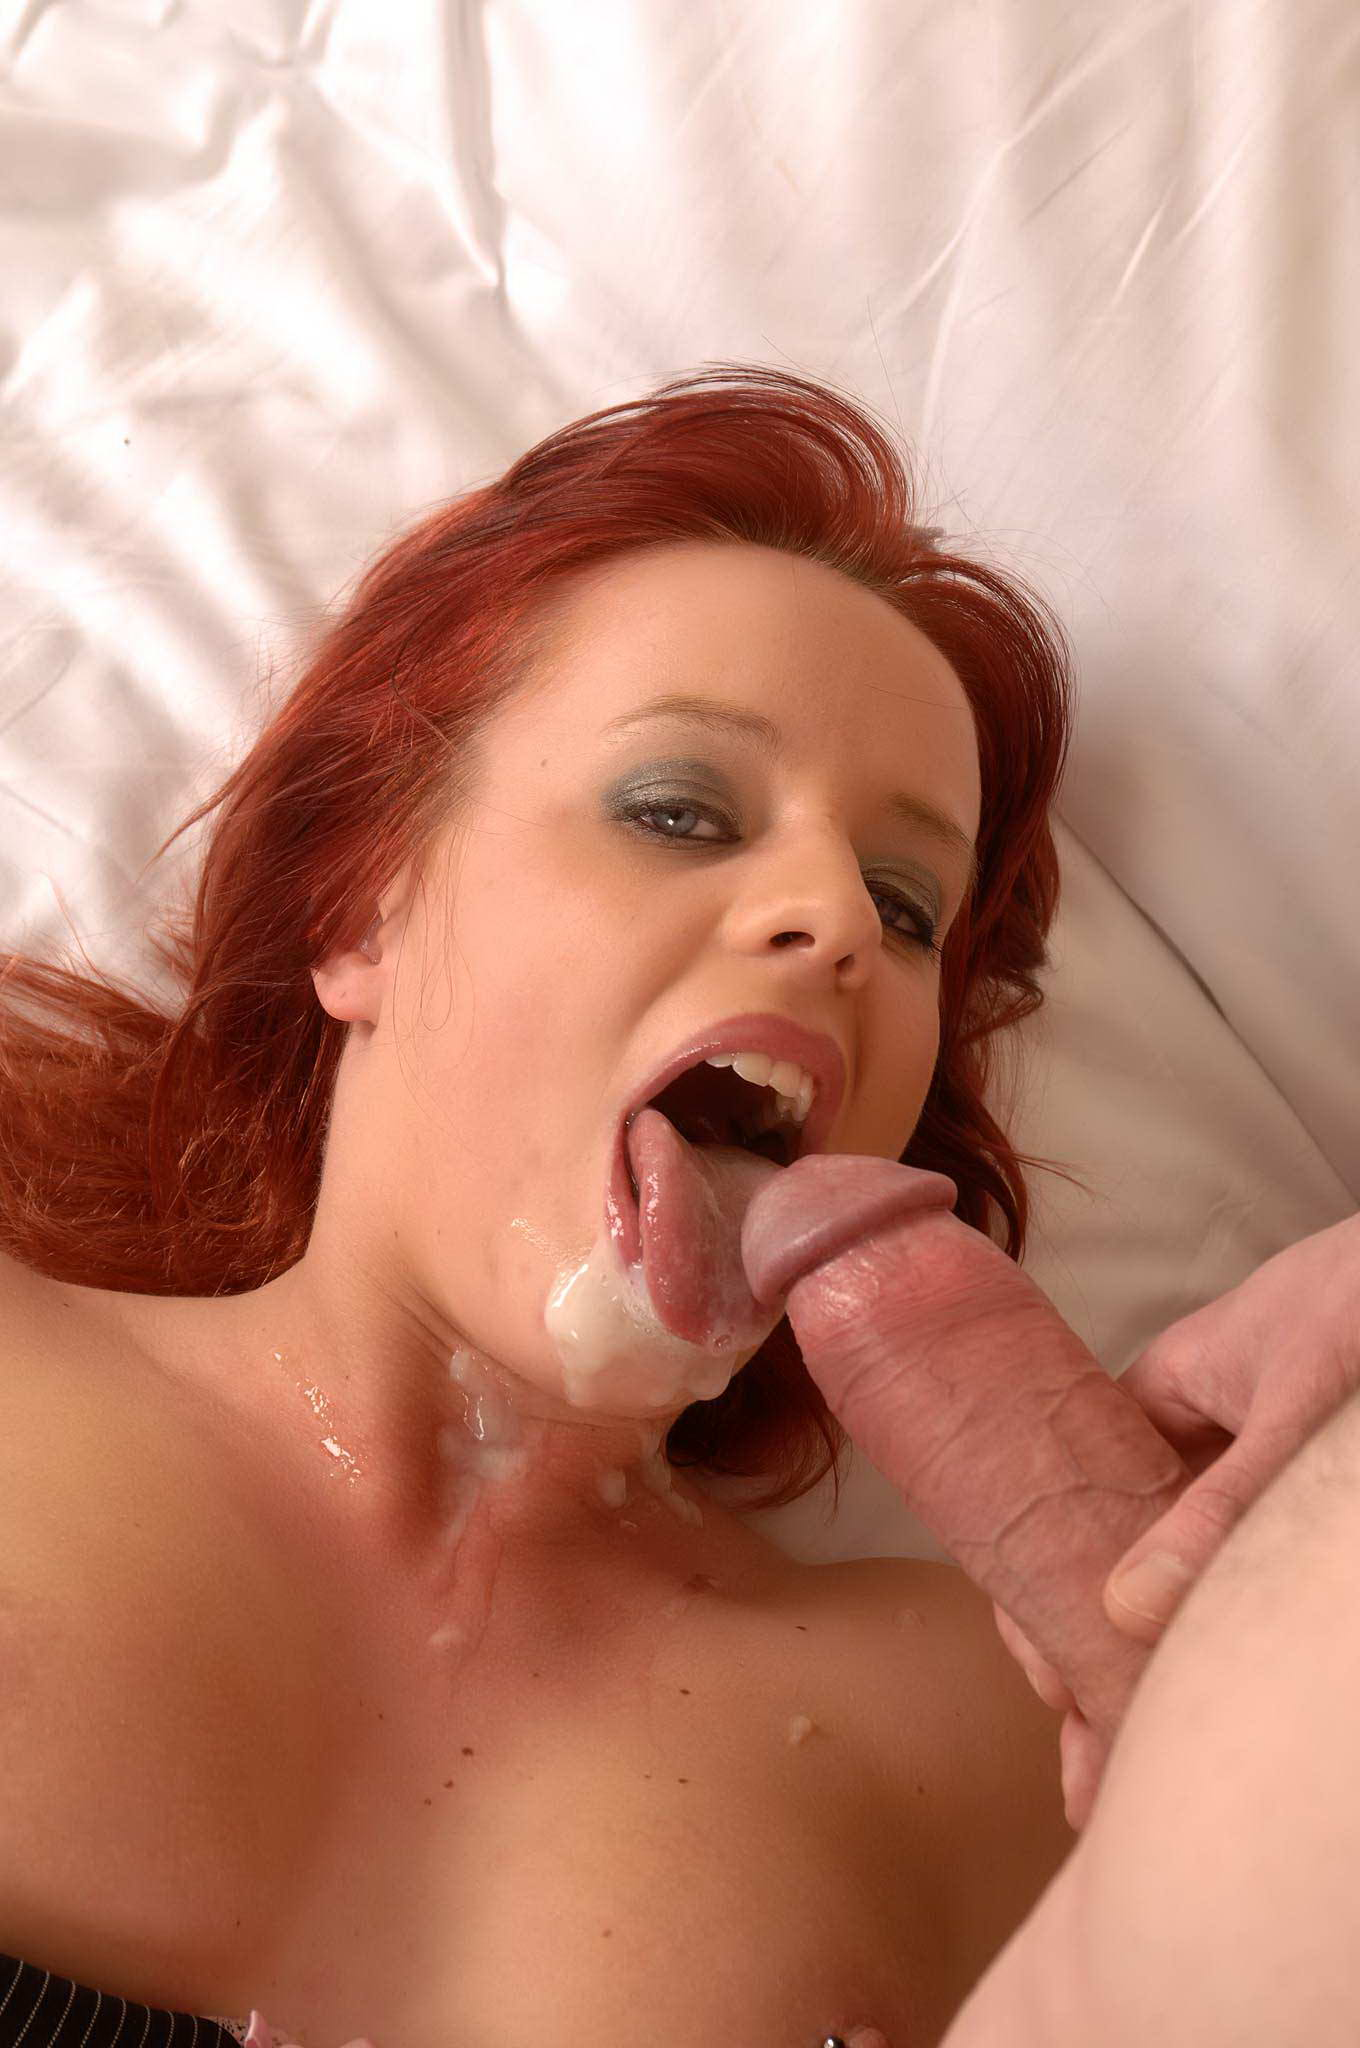 That's redhead pornstars fucking Nicole perfect